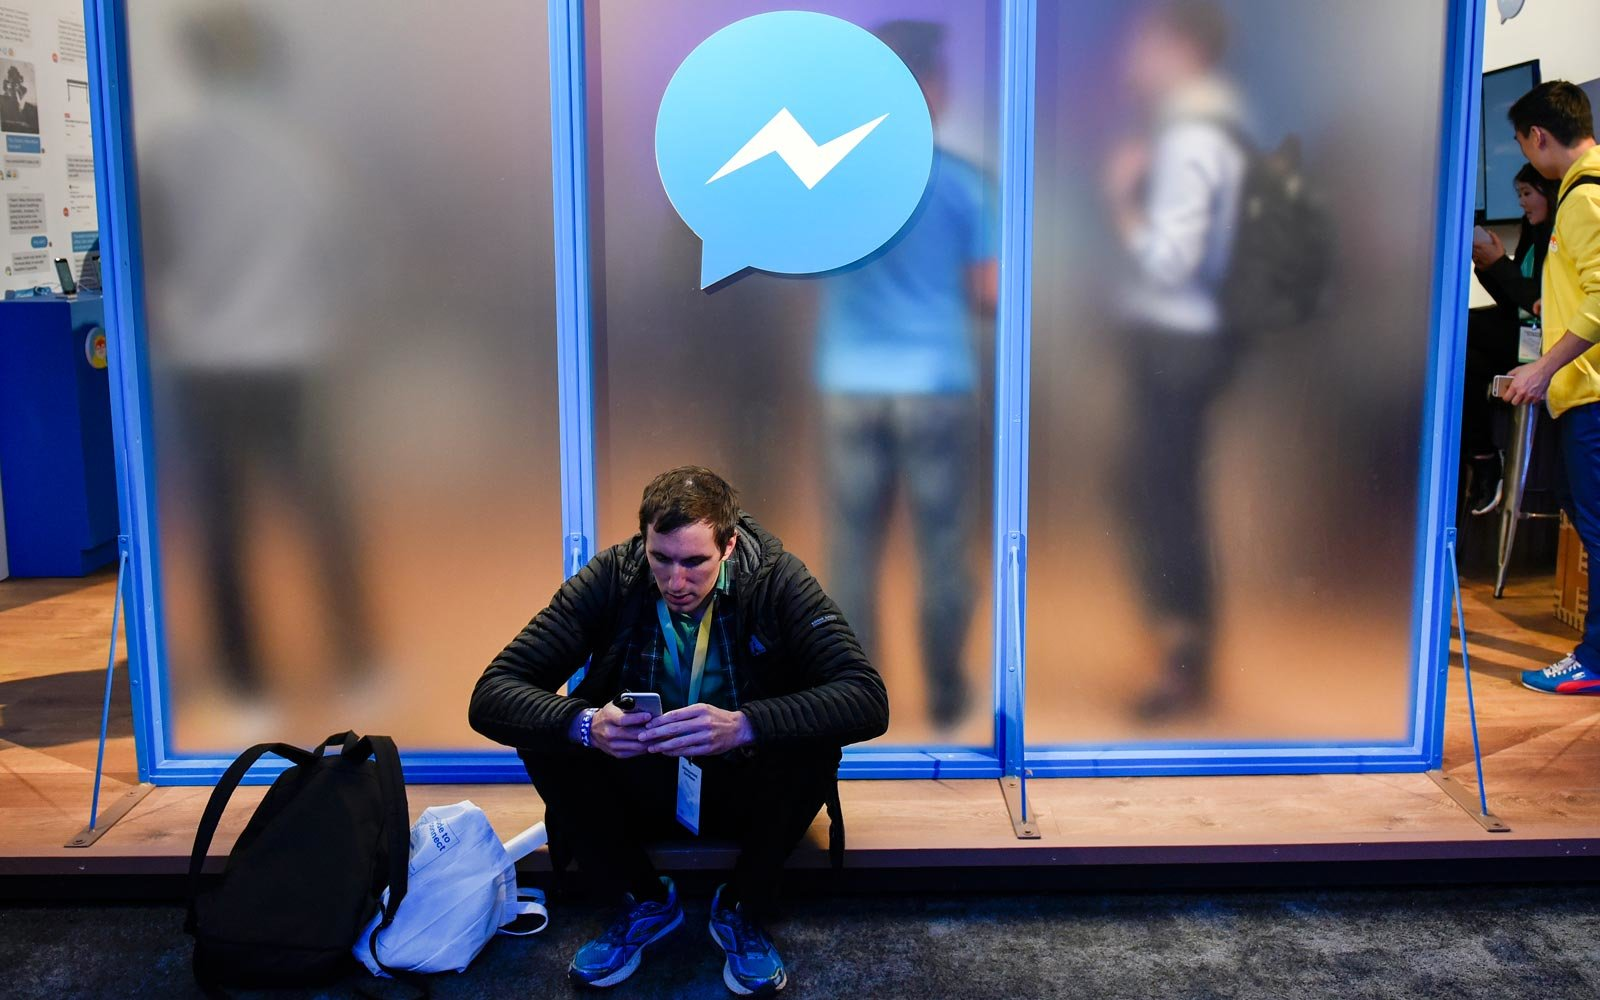 how to search for private rooms in messenger on facebook